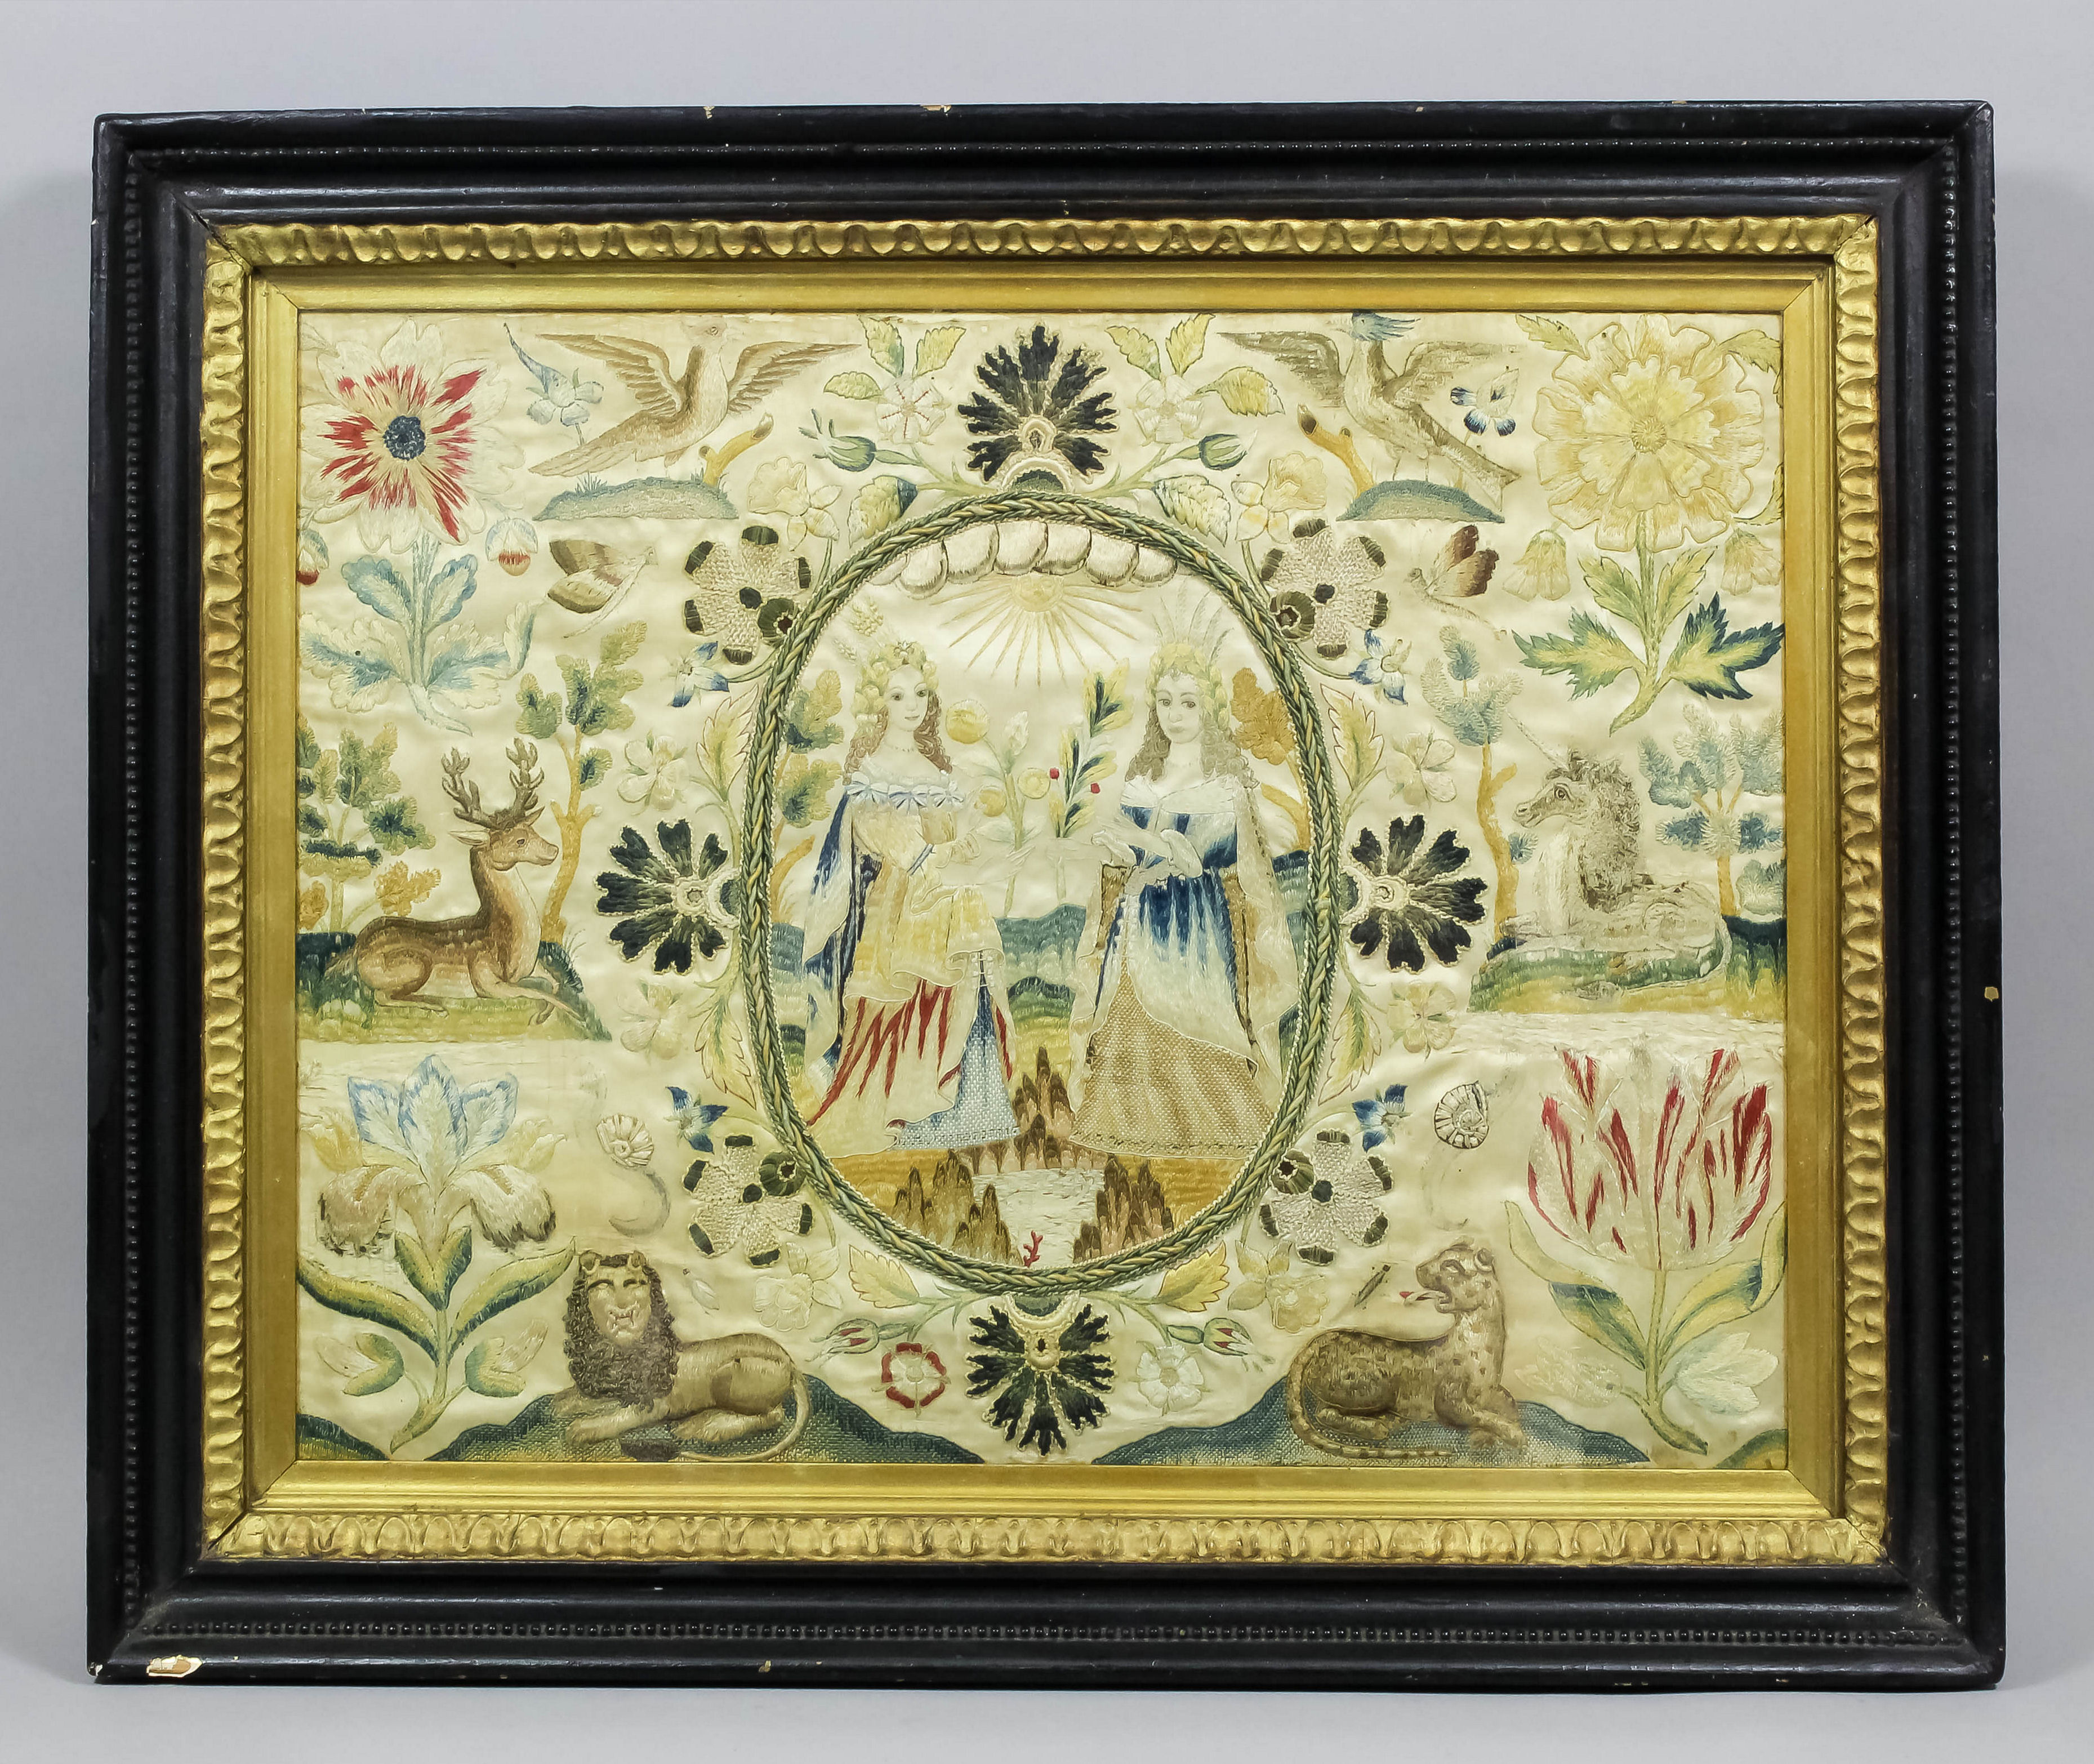 A mid 17th Century stumpwork picture depicting two ladies, in a central oval cartouche, surrounded